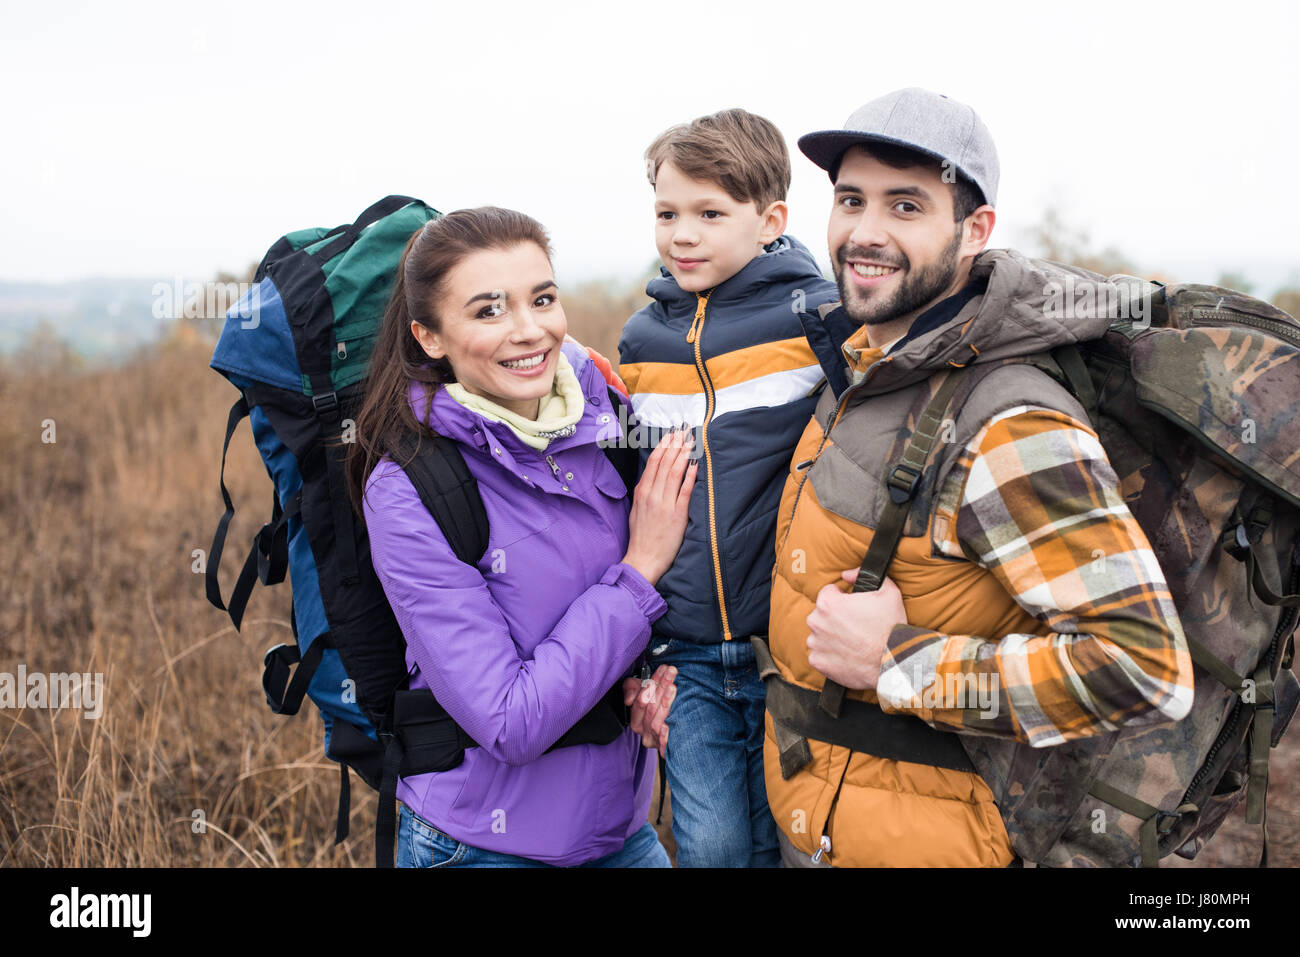 Close-up portrait of smiling family with backpacks standing embracing on rural path - Stock Image